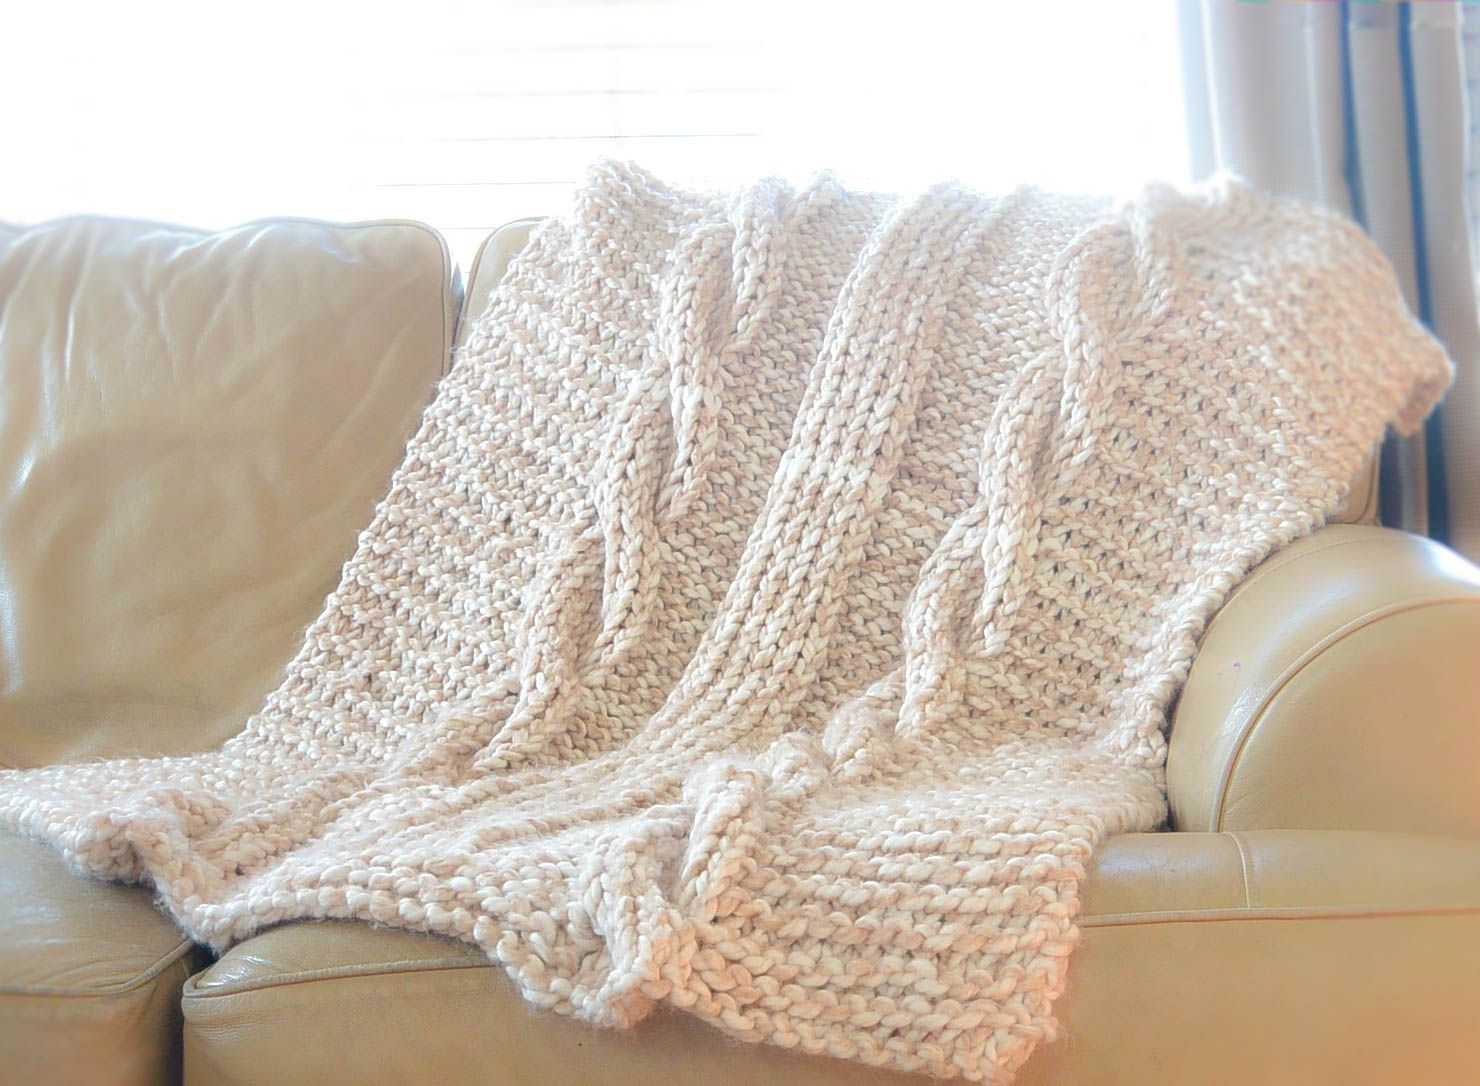 Cable knit afghan pattern easy free knitting pinterest cable knit afghan pattern easy free bankloansurffo Images